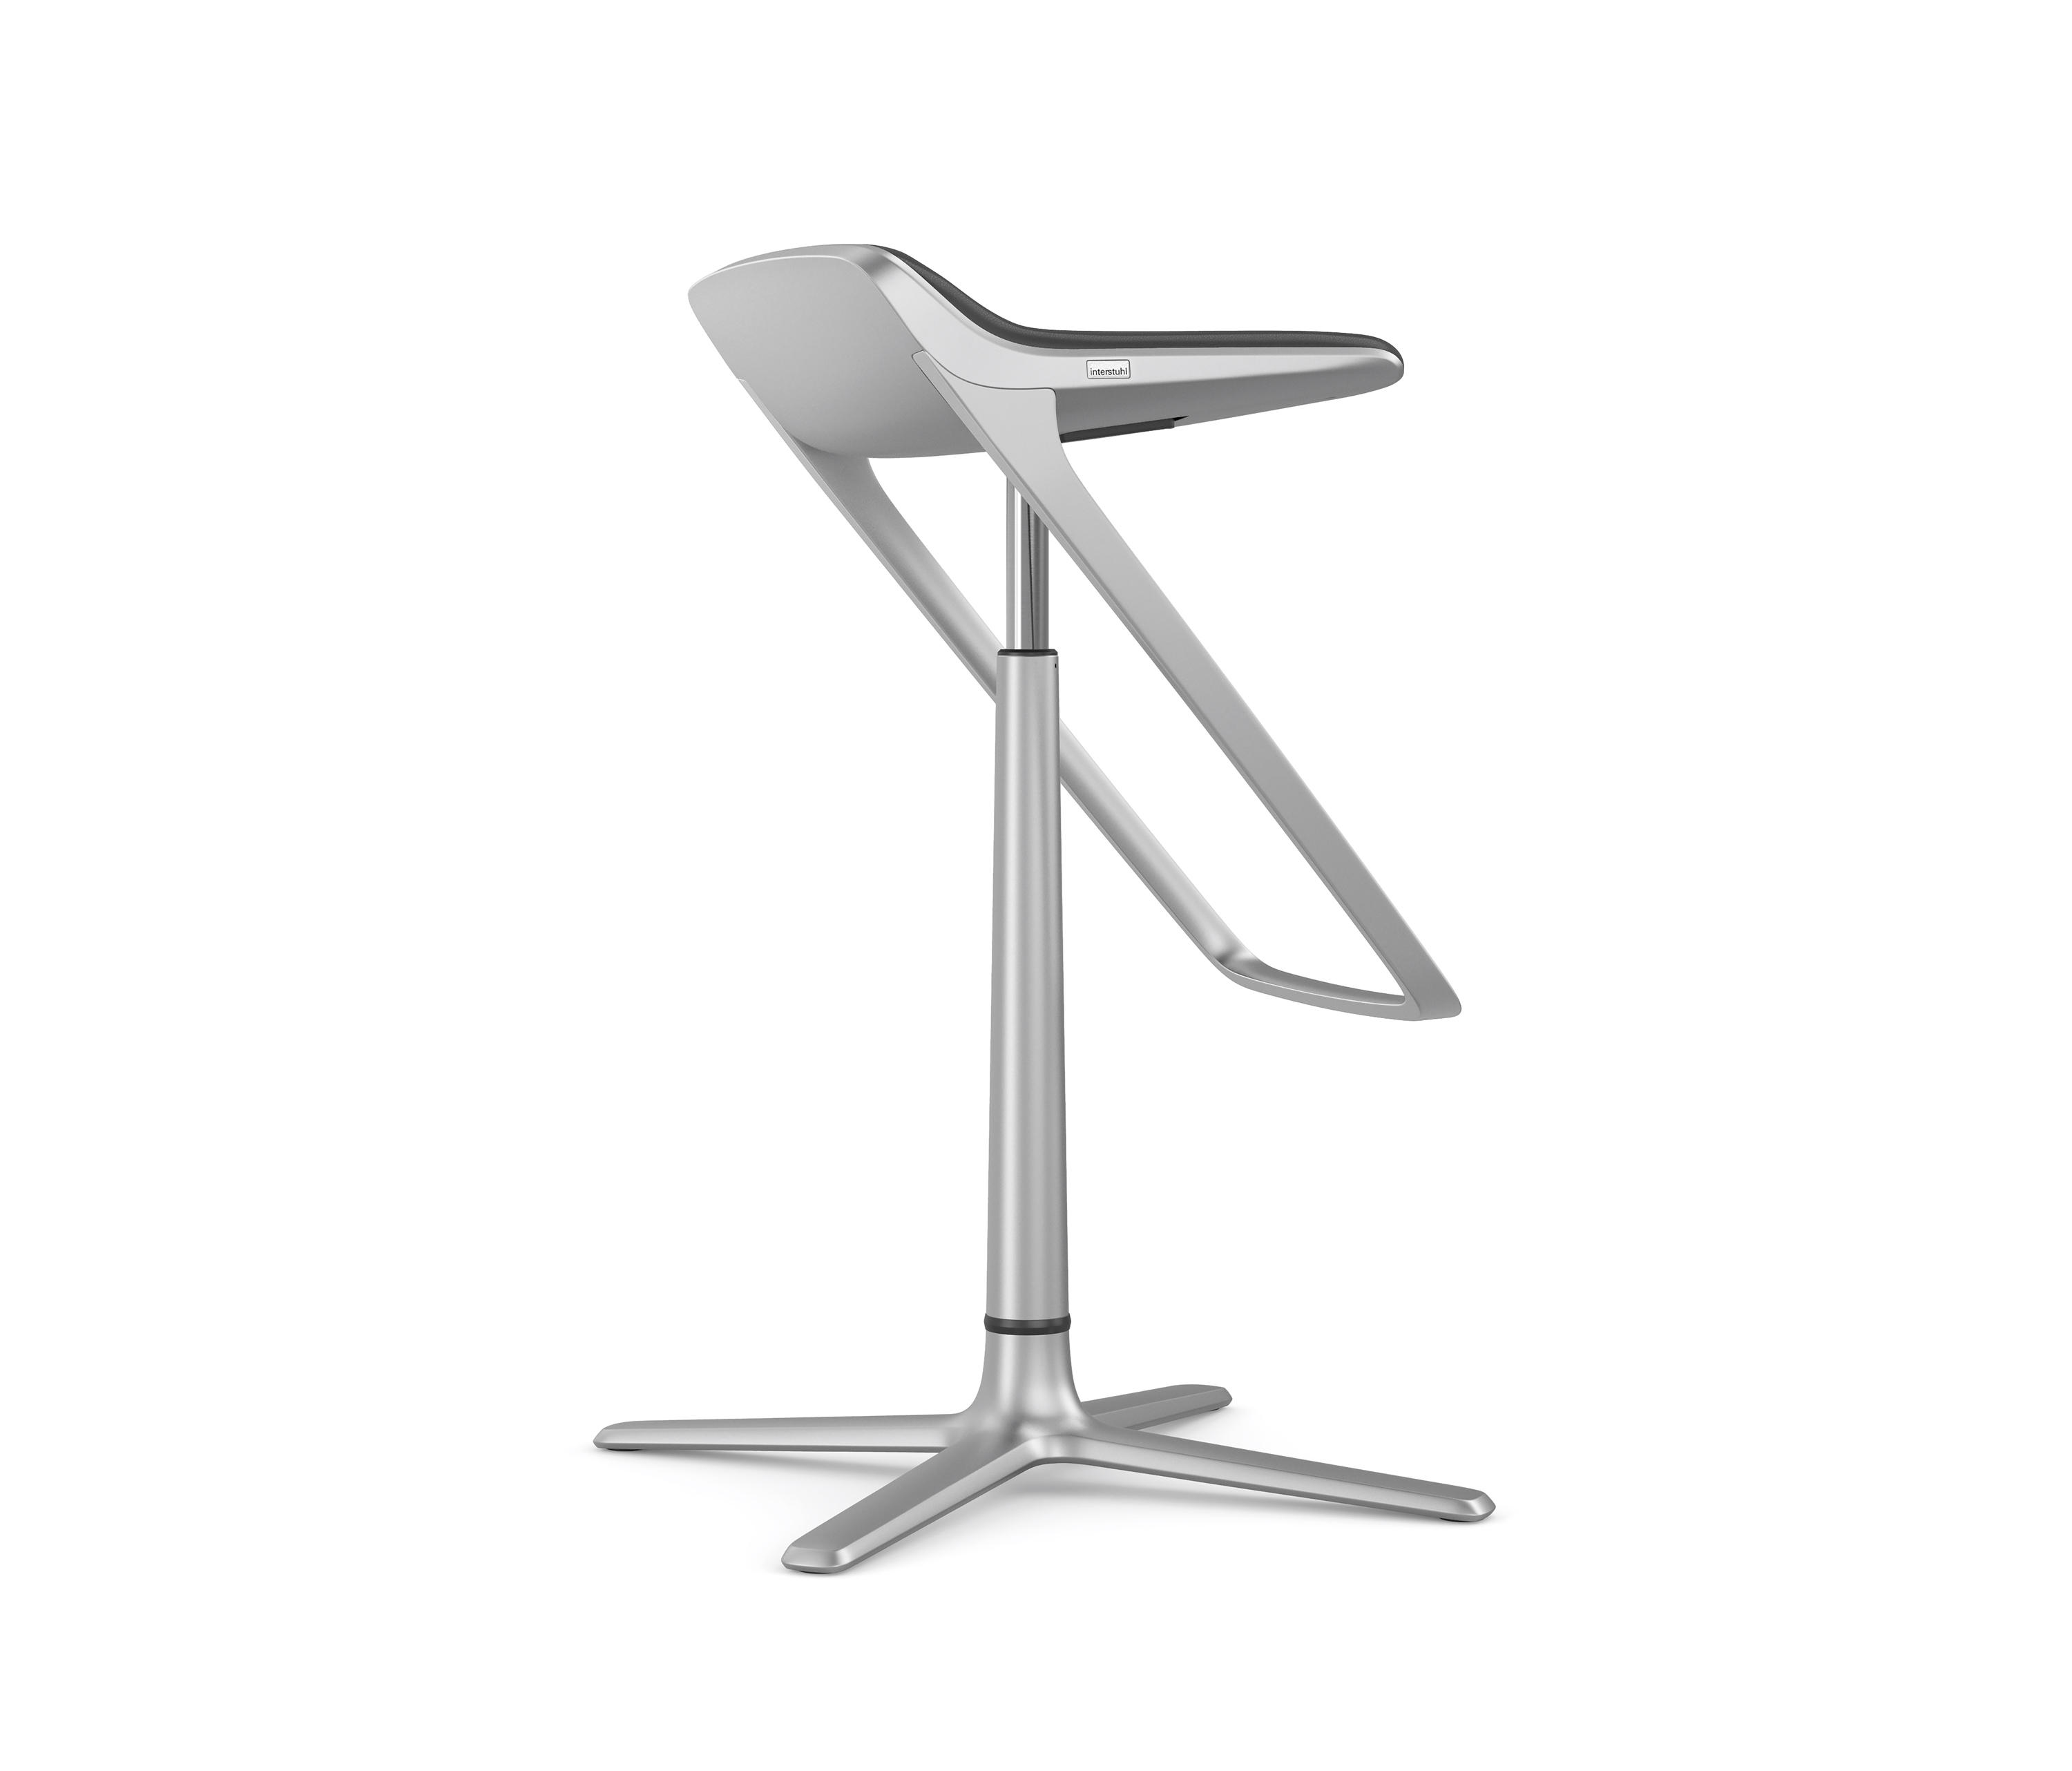 KINETICIS5 710K - Swivel stools from Interstuhl Büromöbel GmbH & Co ...